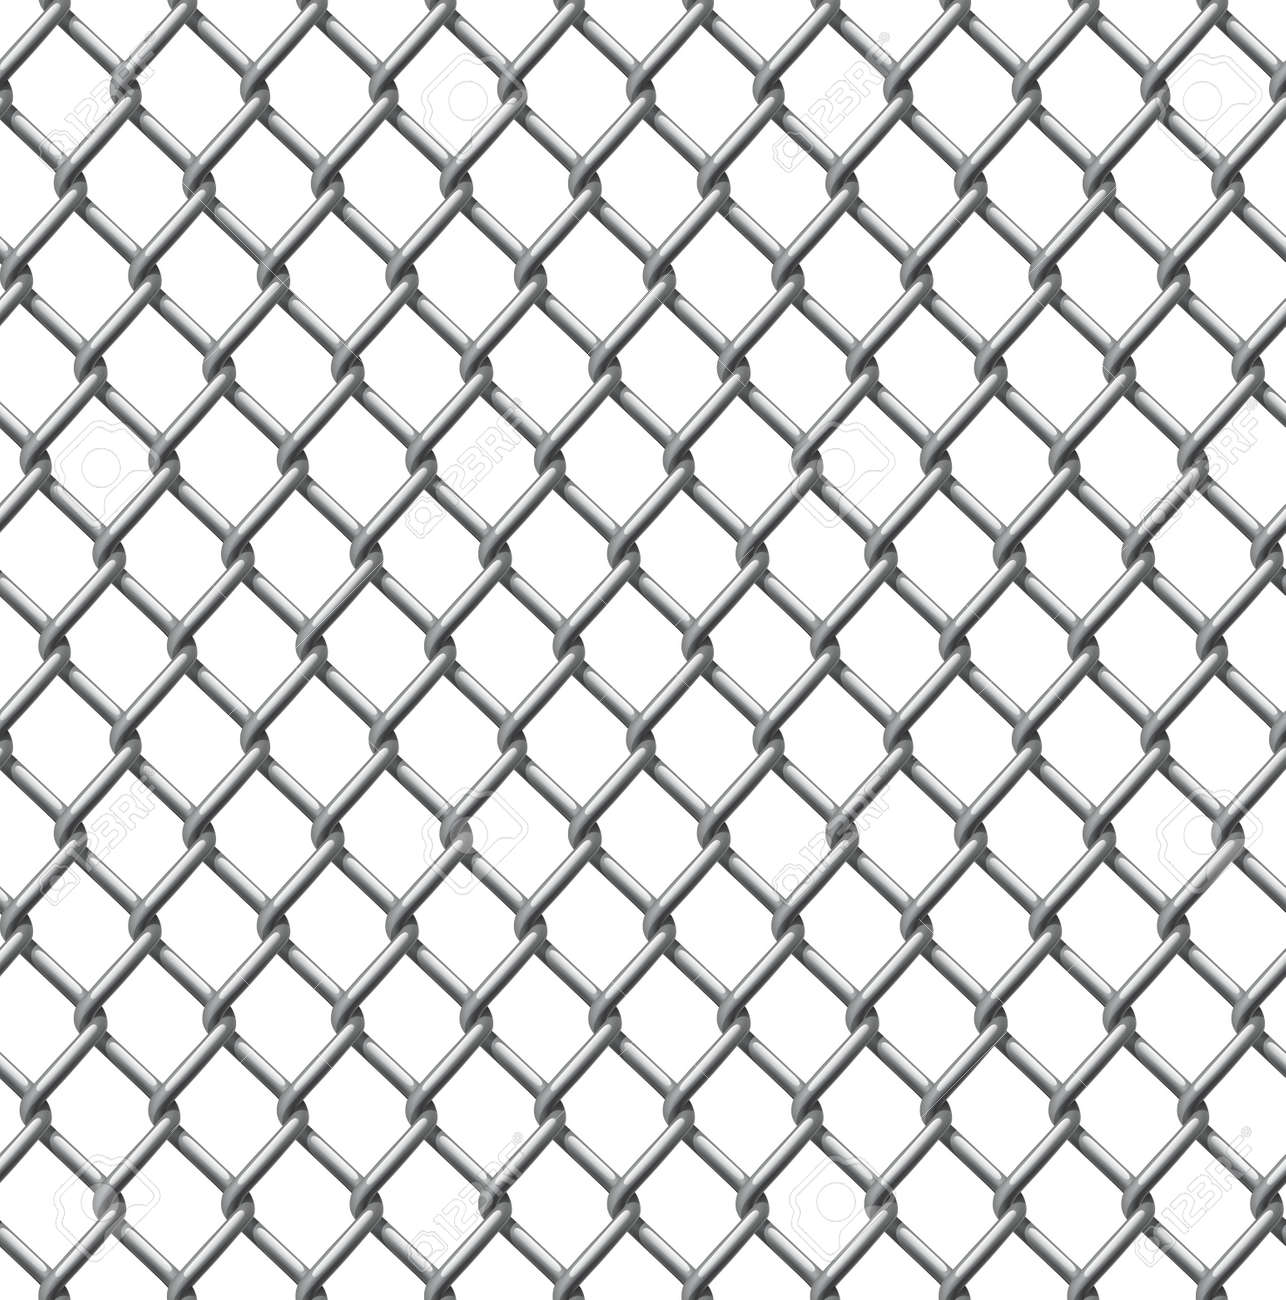 Chain Link Vector an illustration of a seamlessly tillable chain link fence pattern